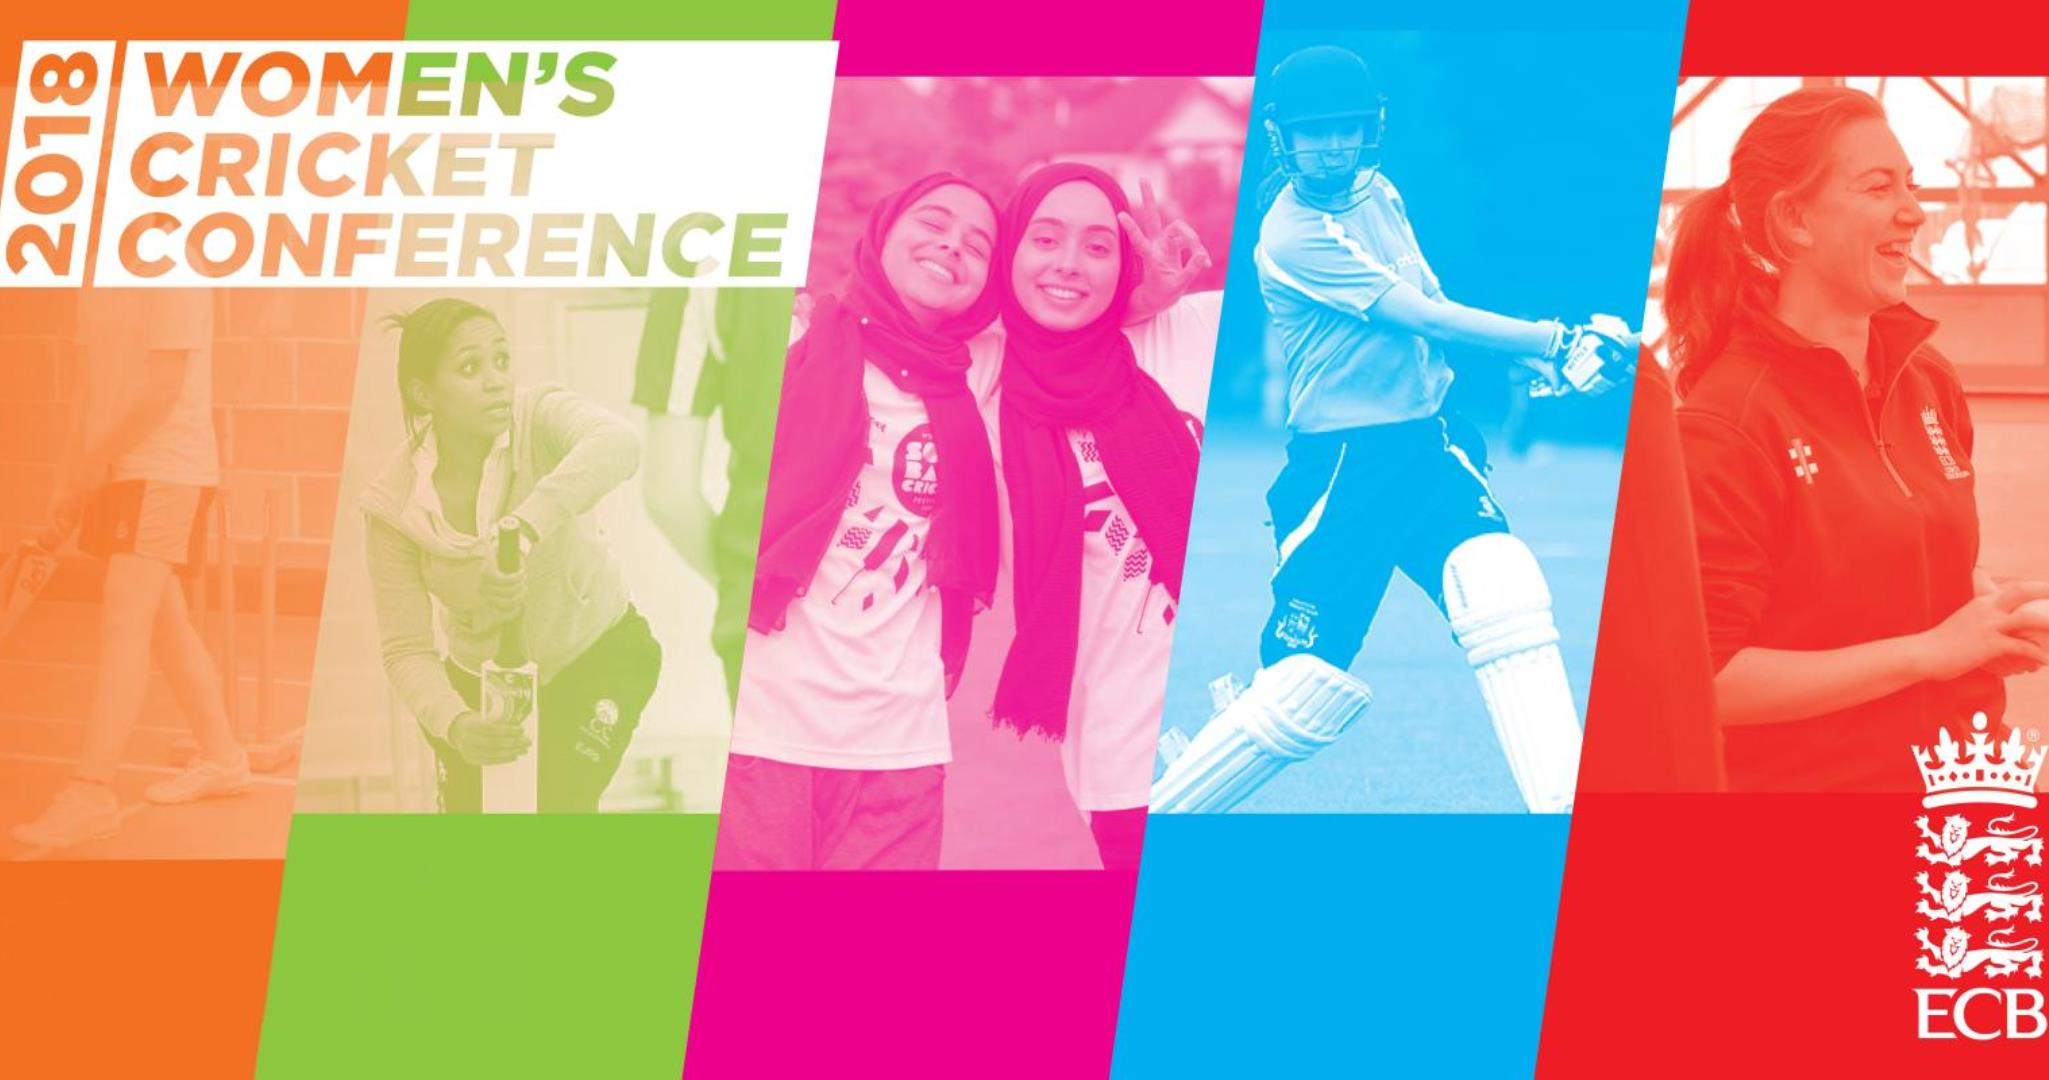 England legend Lydia leads women's coaching conference – places still available